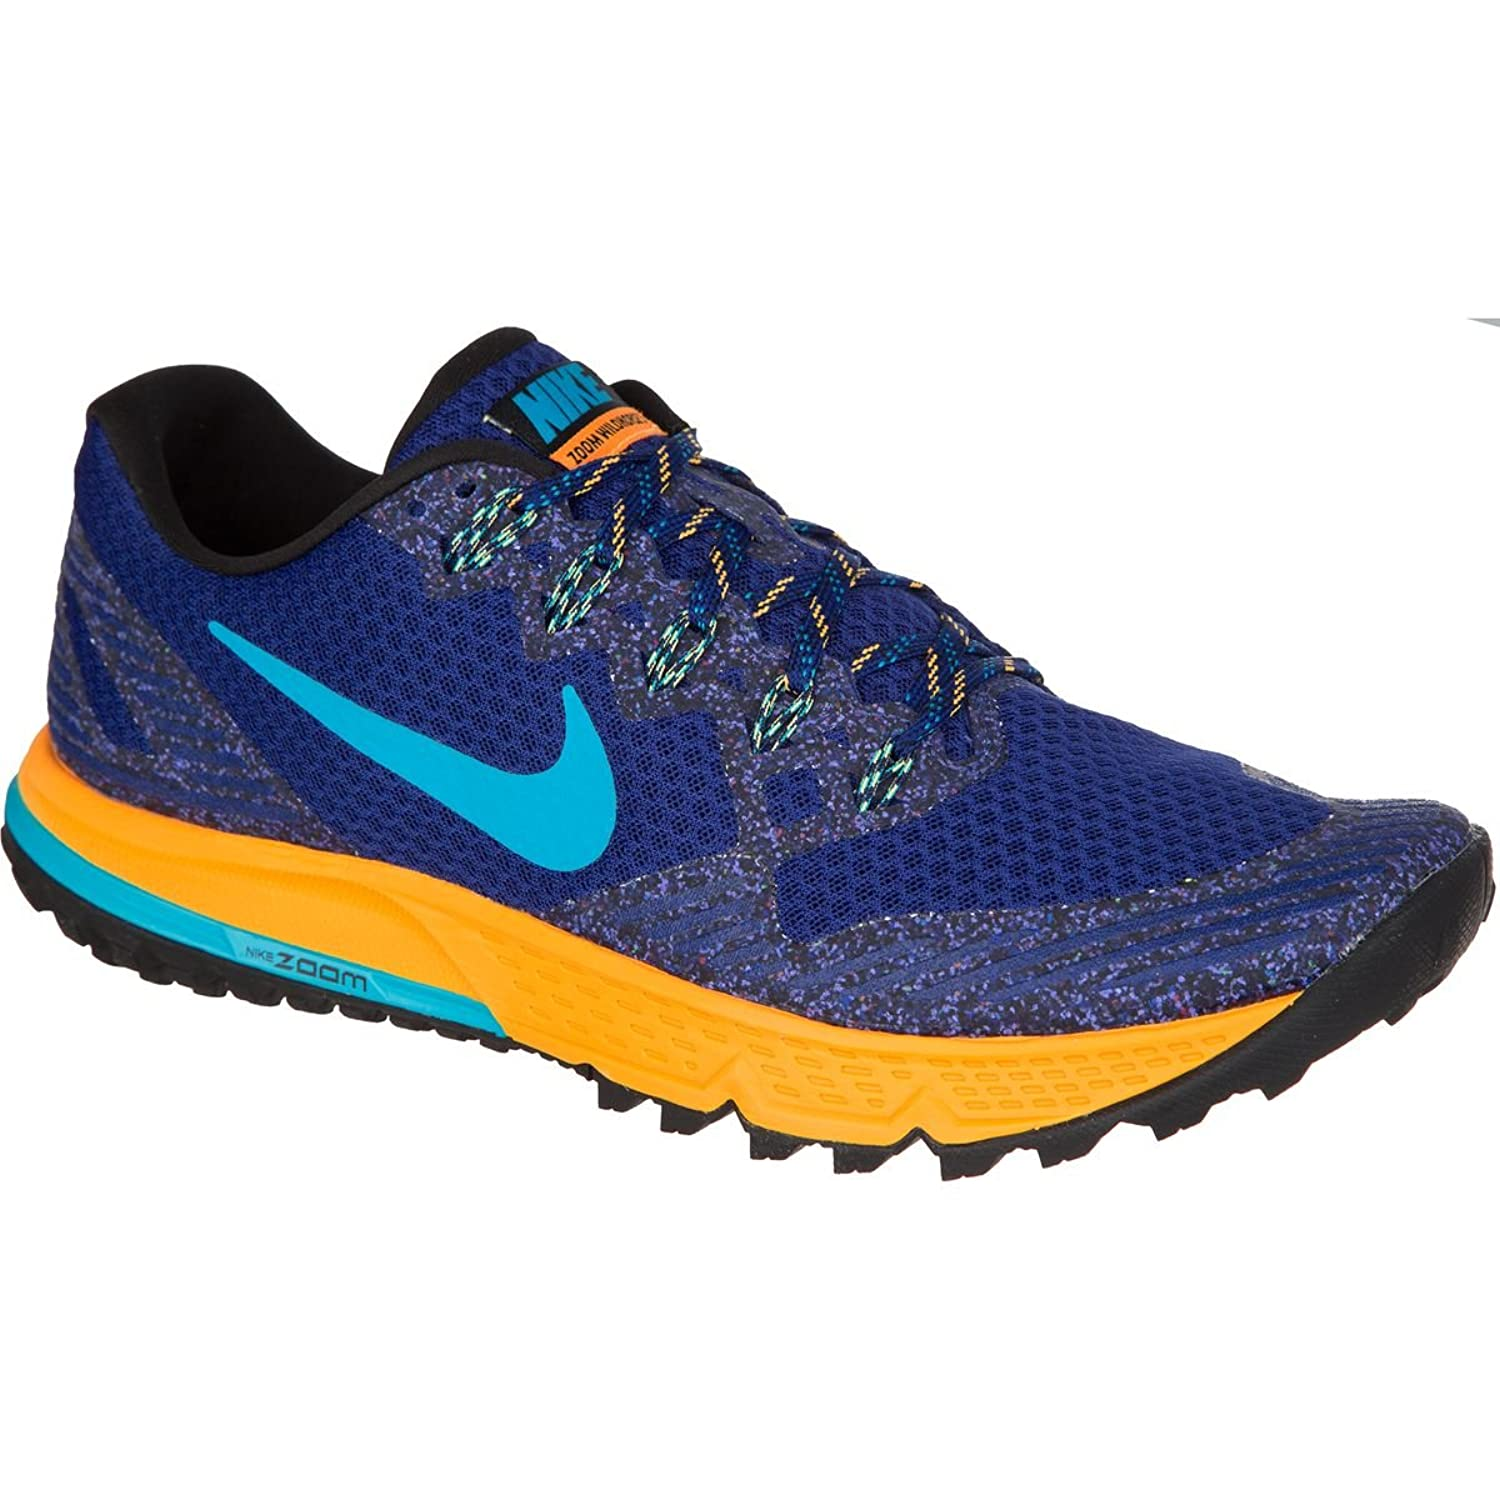 nouveaux styles 2700b c6767 Nike Air Zoom Wildhorse 3 Trail Running Shoe - Men's